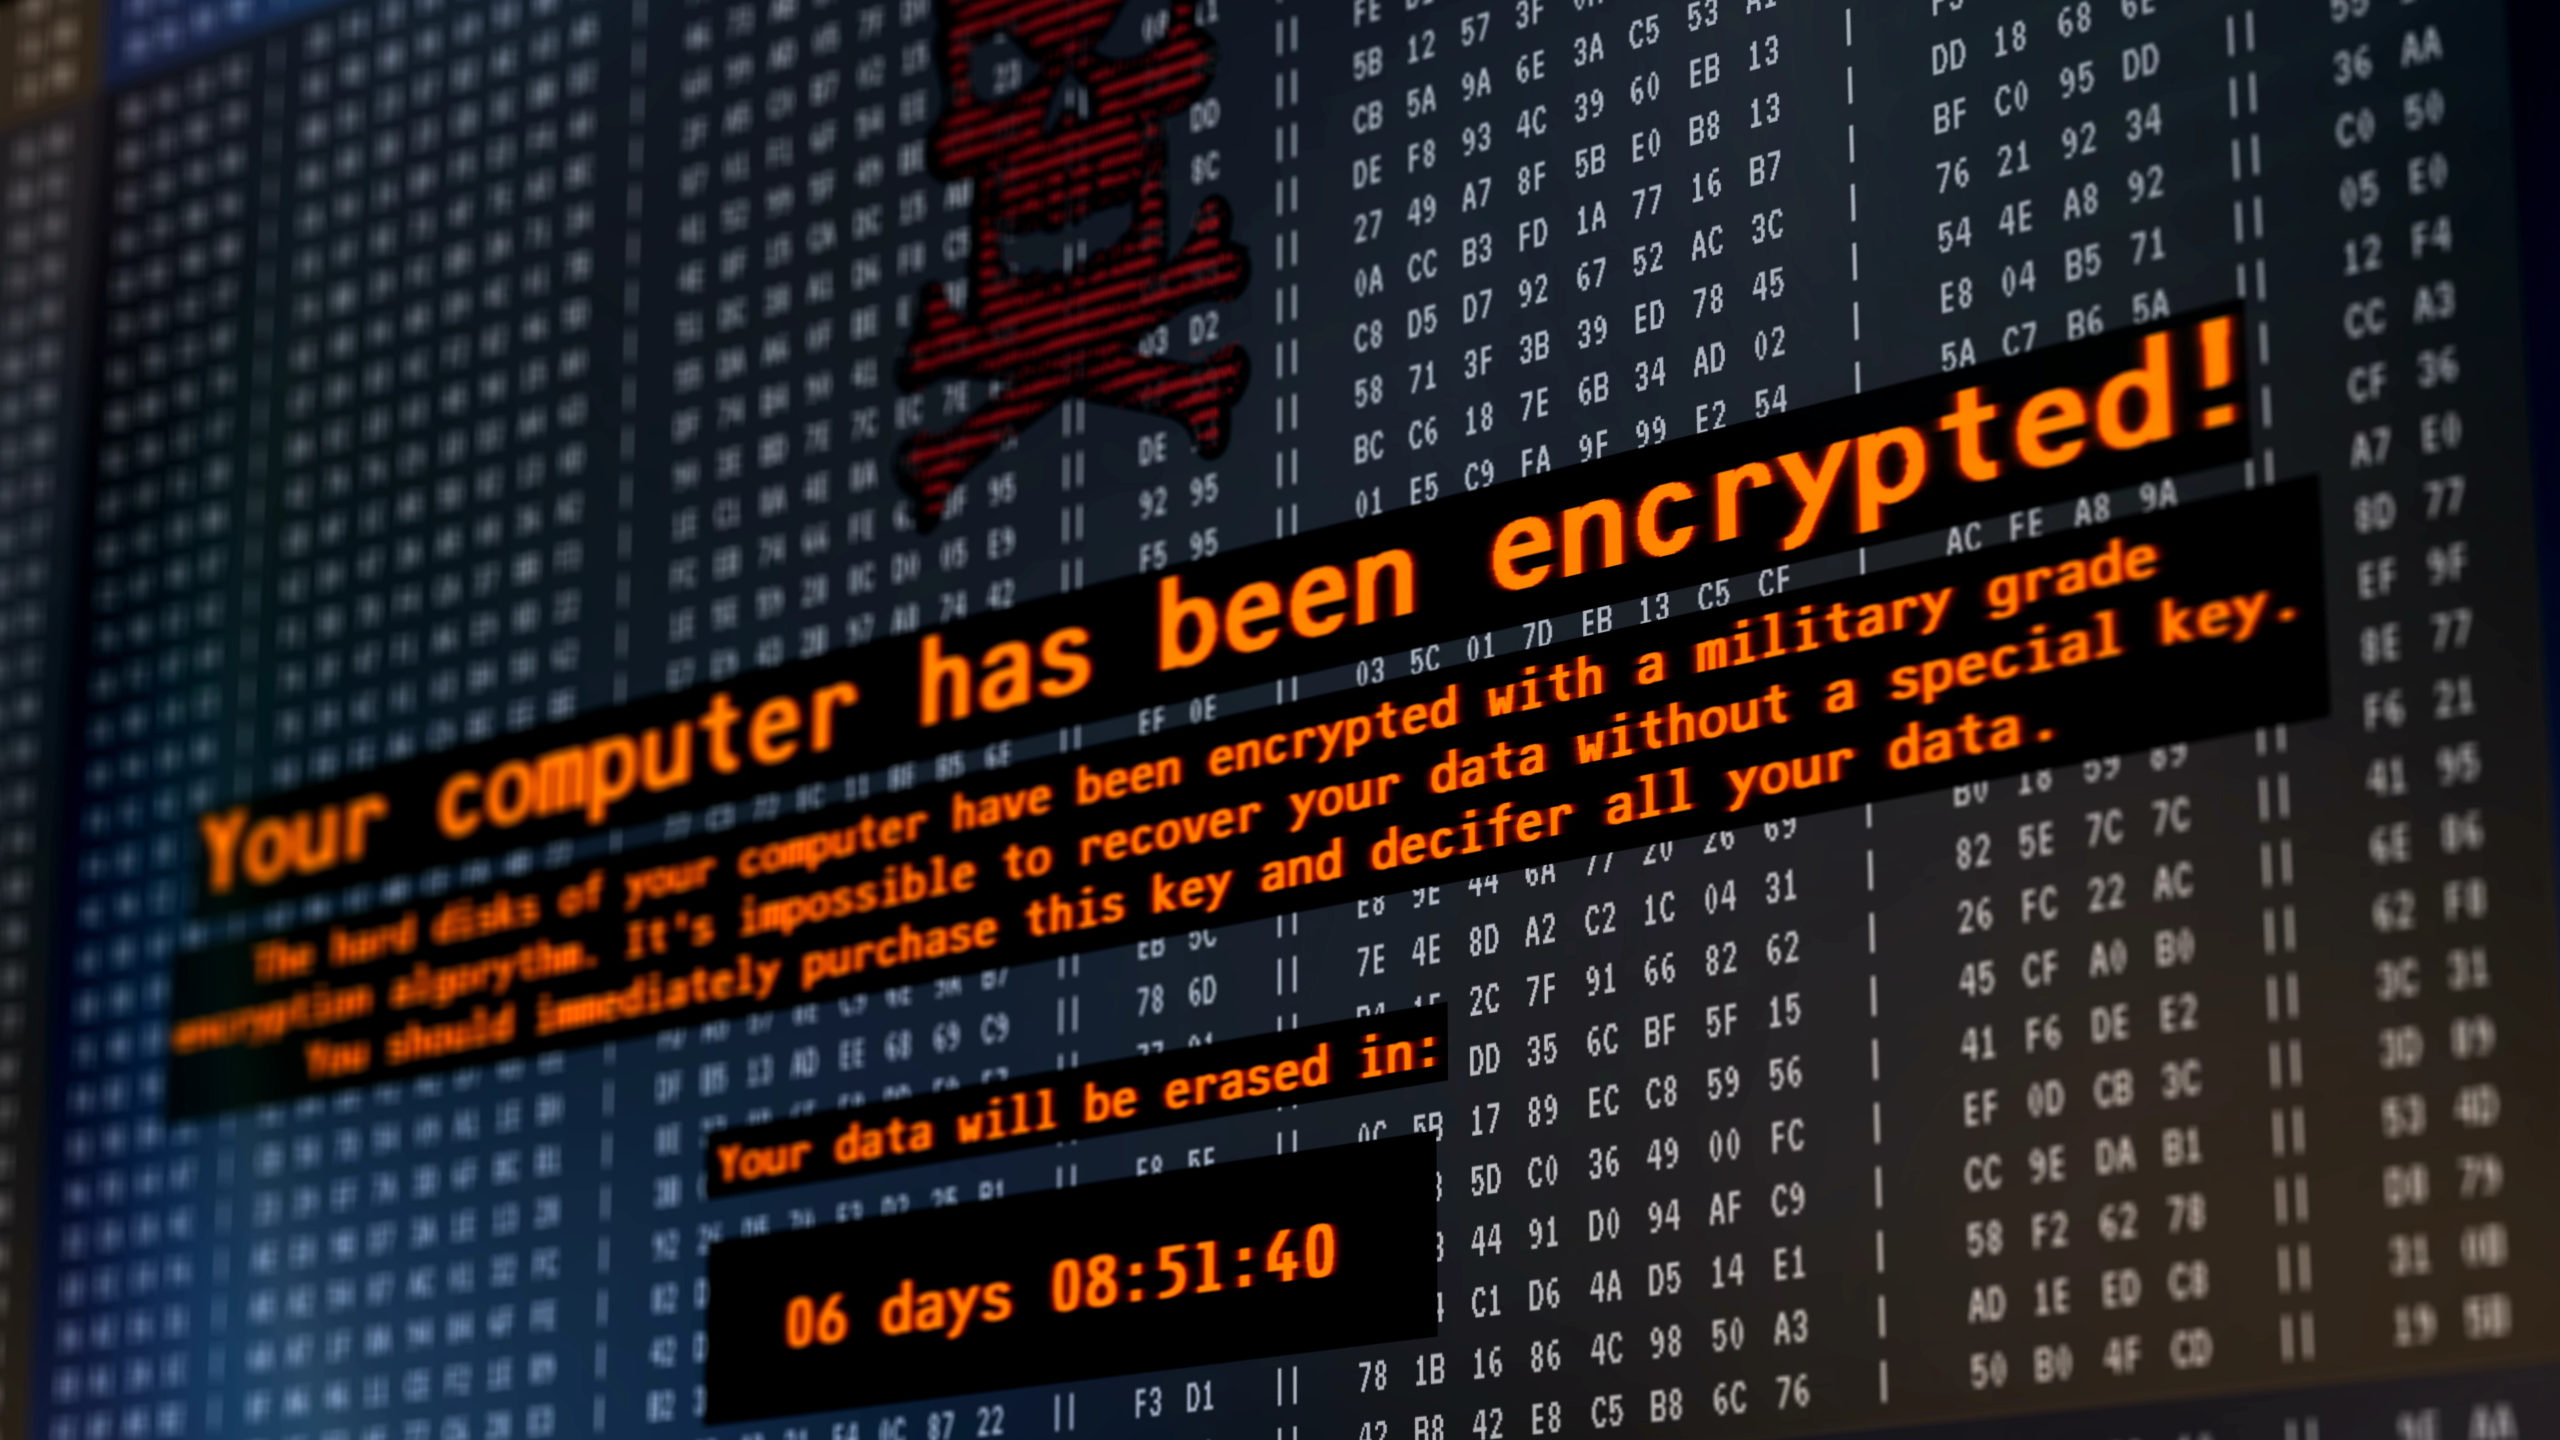 """Malware warning message with headline """"Your computer has been encrypted!"""" displayed on a computer screen."""